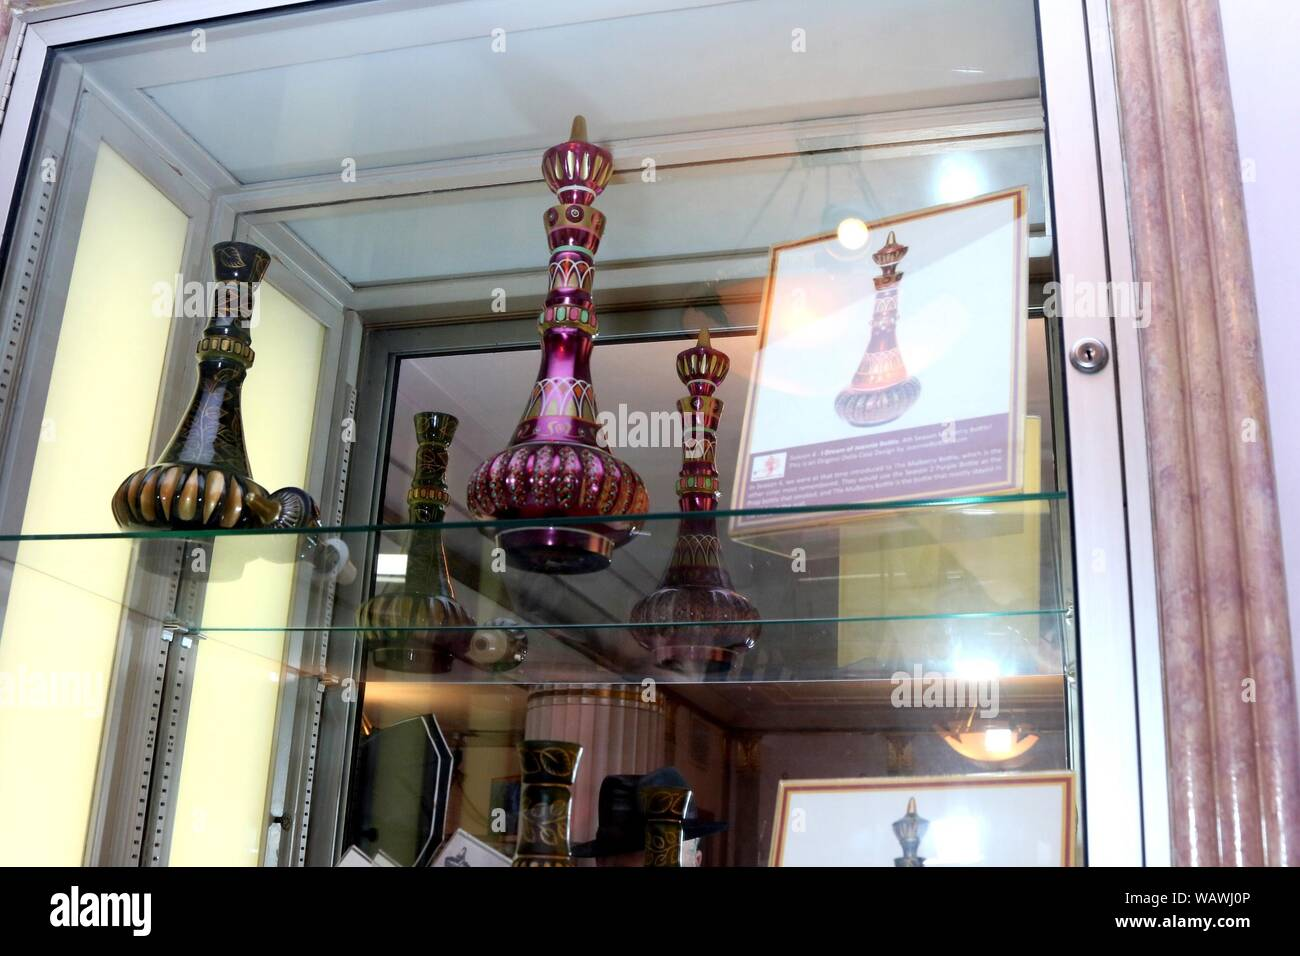 Los Angeles Ca 21st Aug 2019 Genie Bottle From I Dream Of Jeannie At Arrivals For Barbara Eden Tribute Exhibition Opening Night Reception The Hollywood Museum Los Angeles Ca August 21 2019